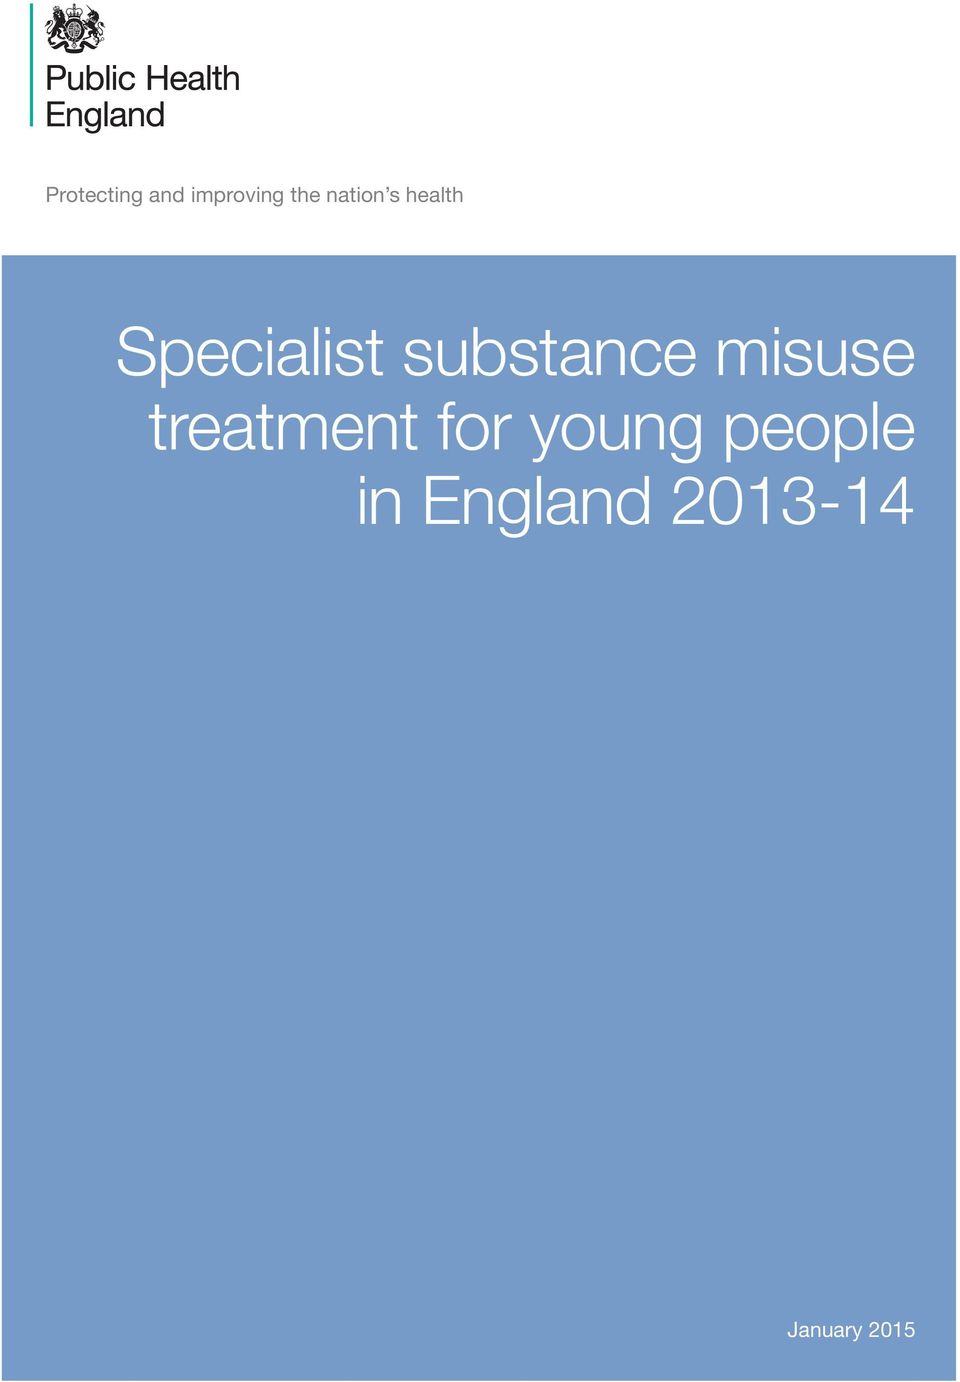 substance misuse treatment for